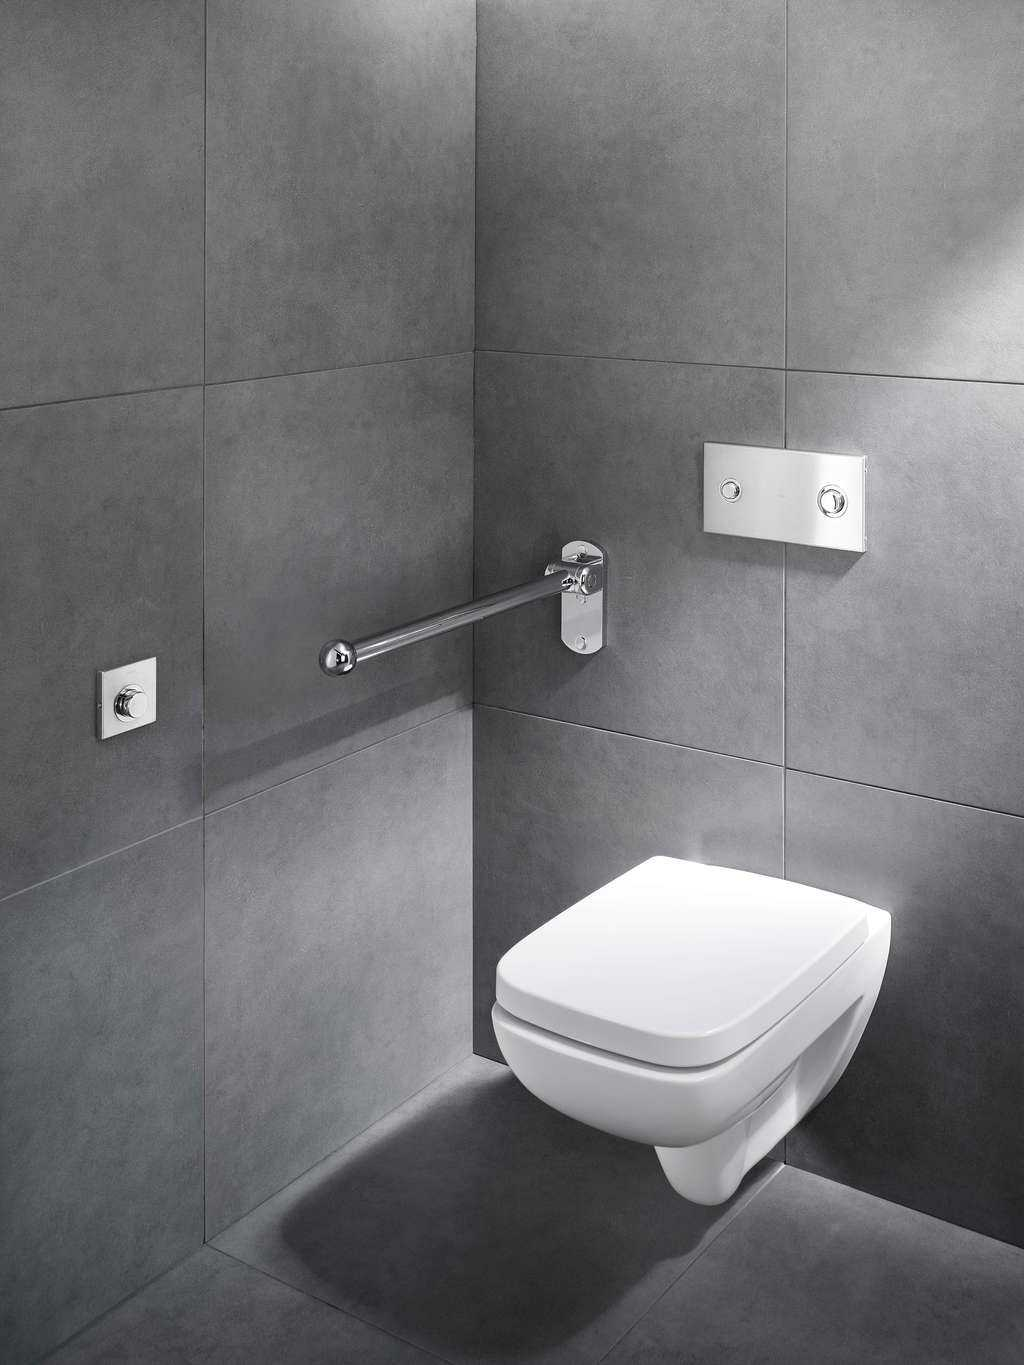 Concealed Cisterns - Plumbing Connection